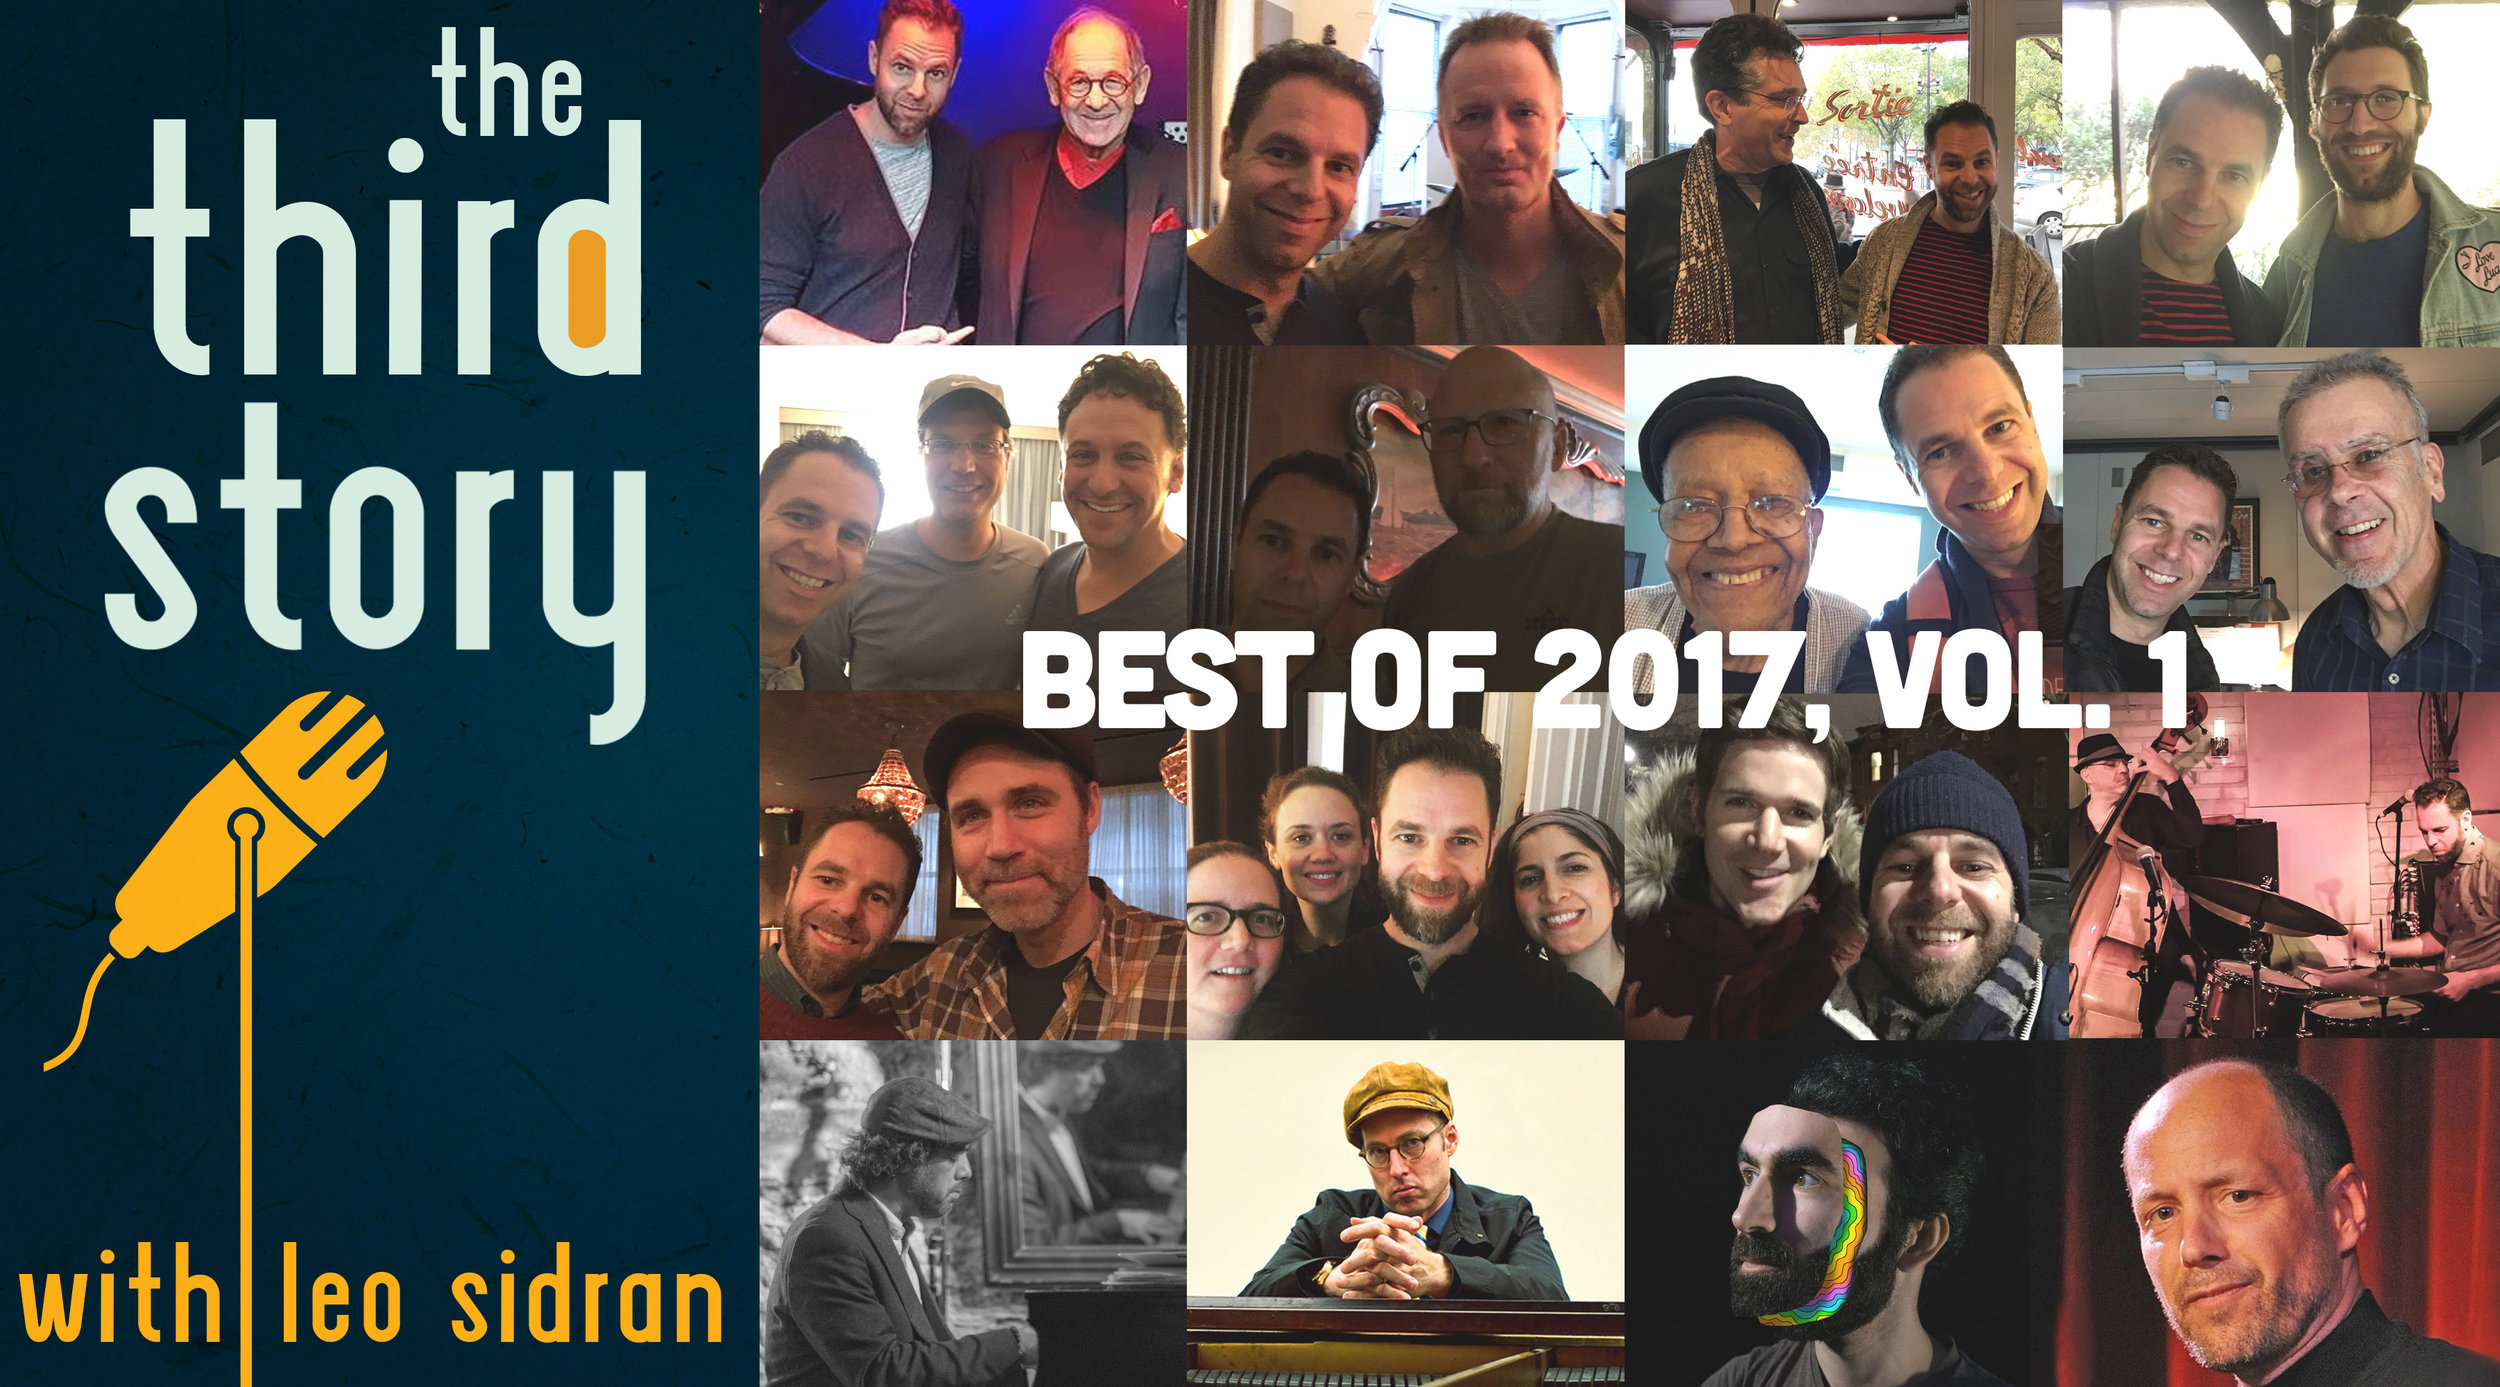 Best of 2017 Vol 1 Web.jpg